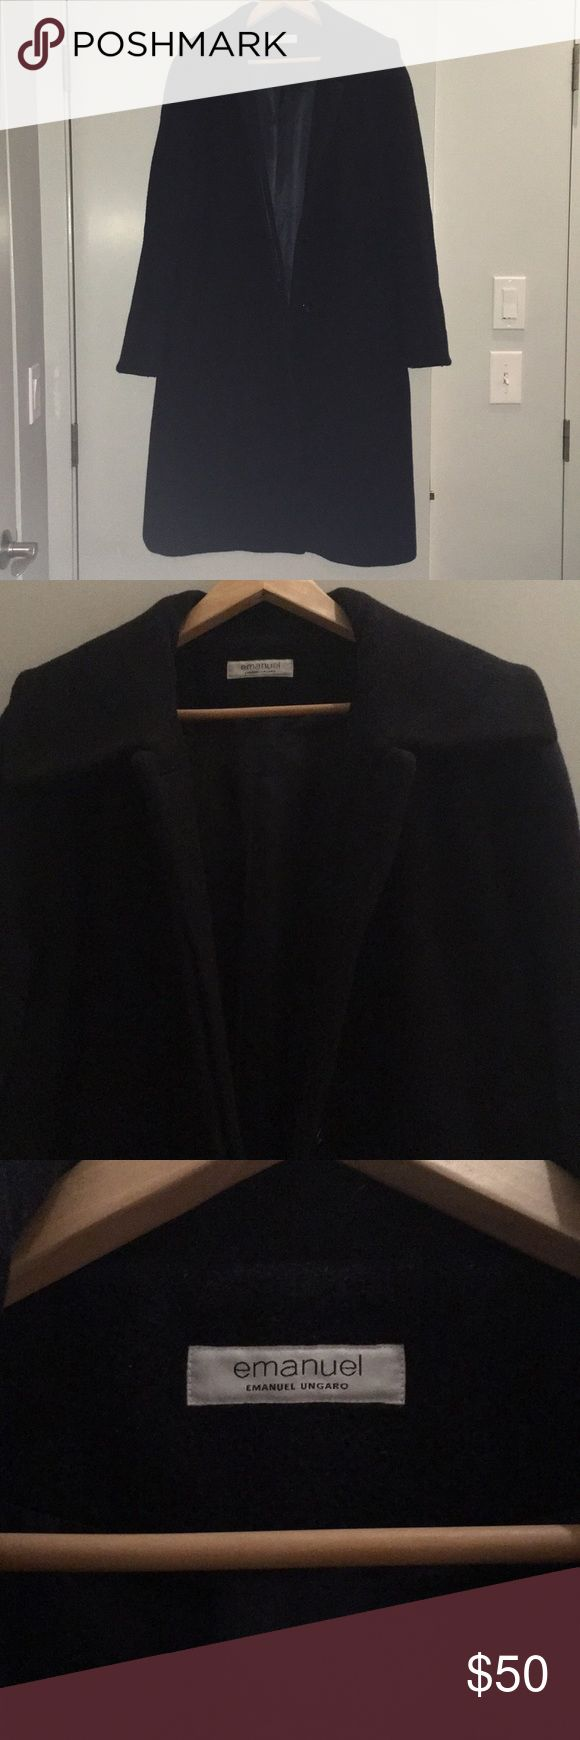 Emanuel Ungaro black pea coat Very high-end coat. Purchased new for about $1500. Has pilling and signs of wear, which are reflected in price. Size 12 or 14, although tag doesn't say. Emanuel Ungaro Jackets & Coats Pea Coats